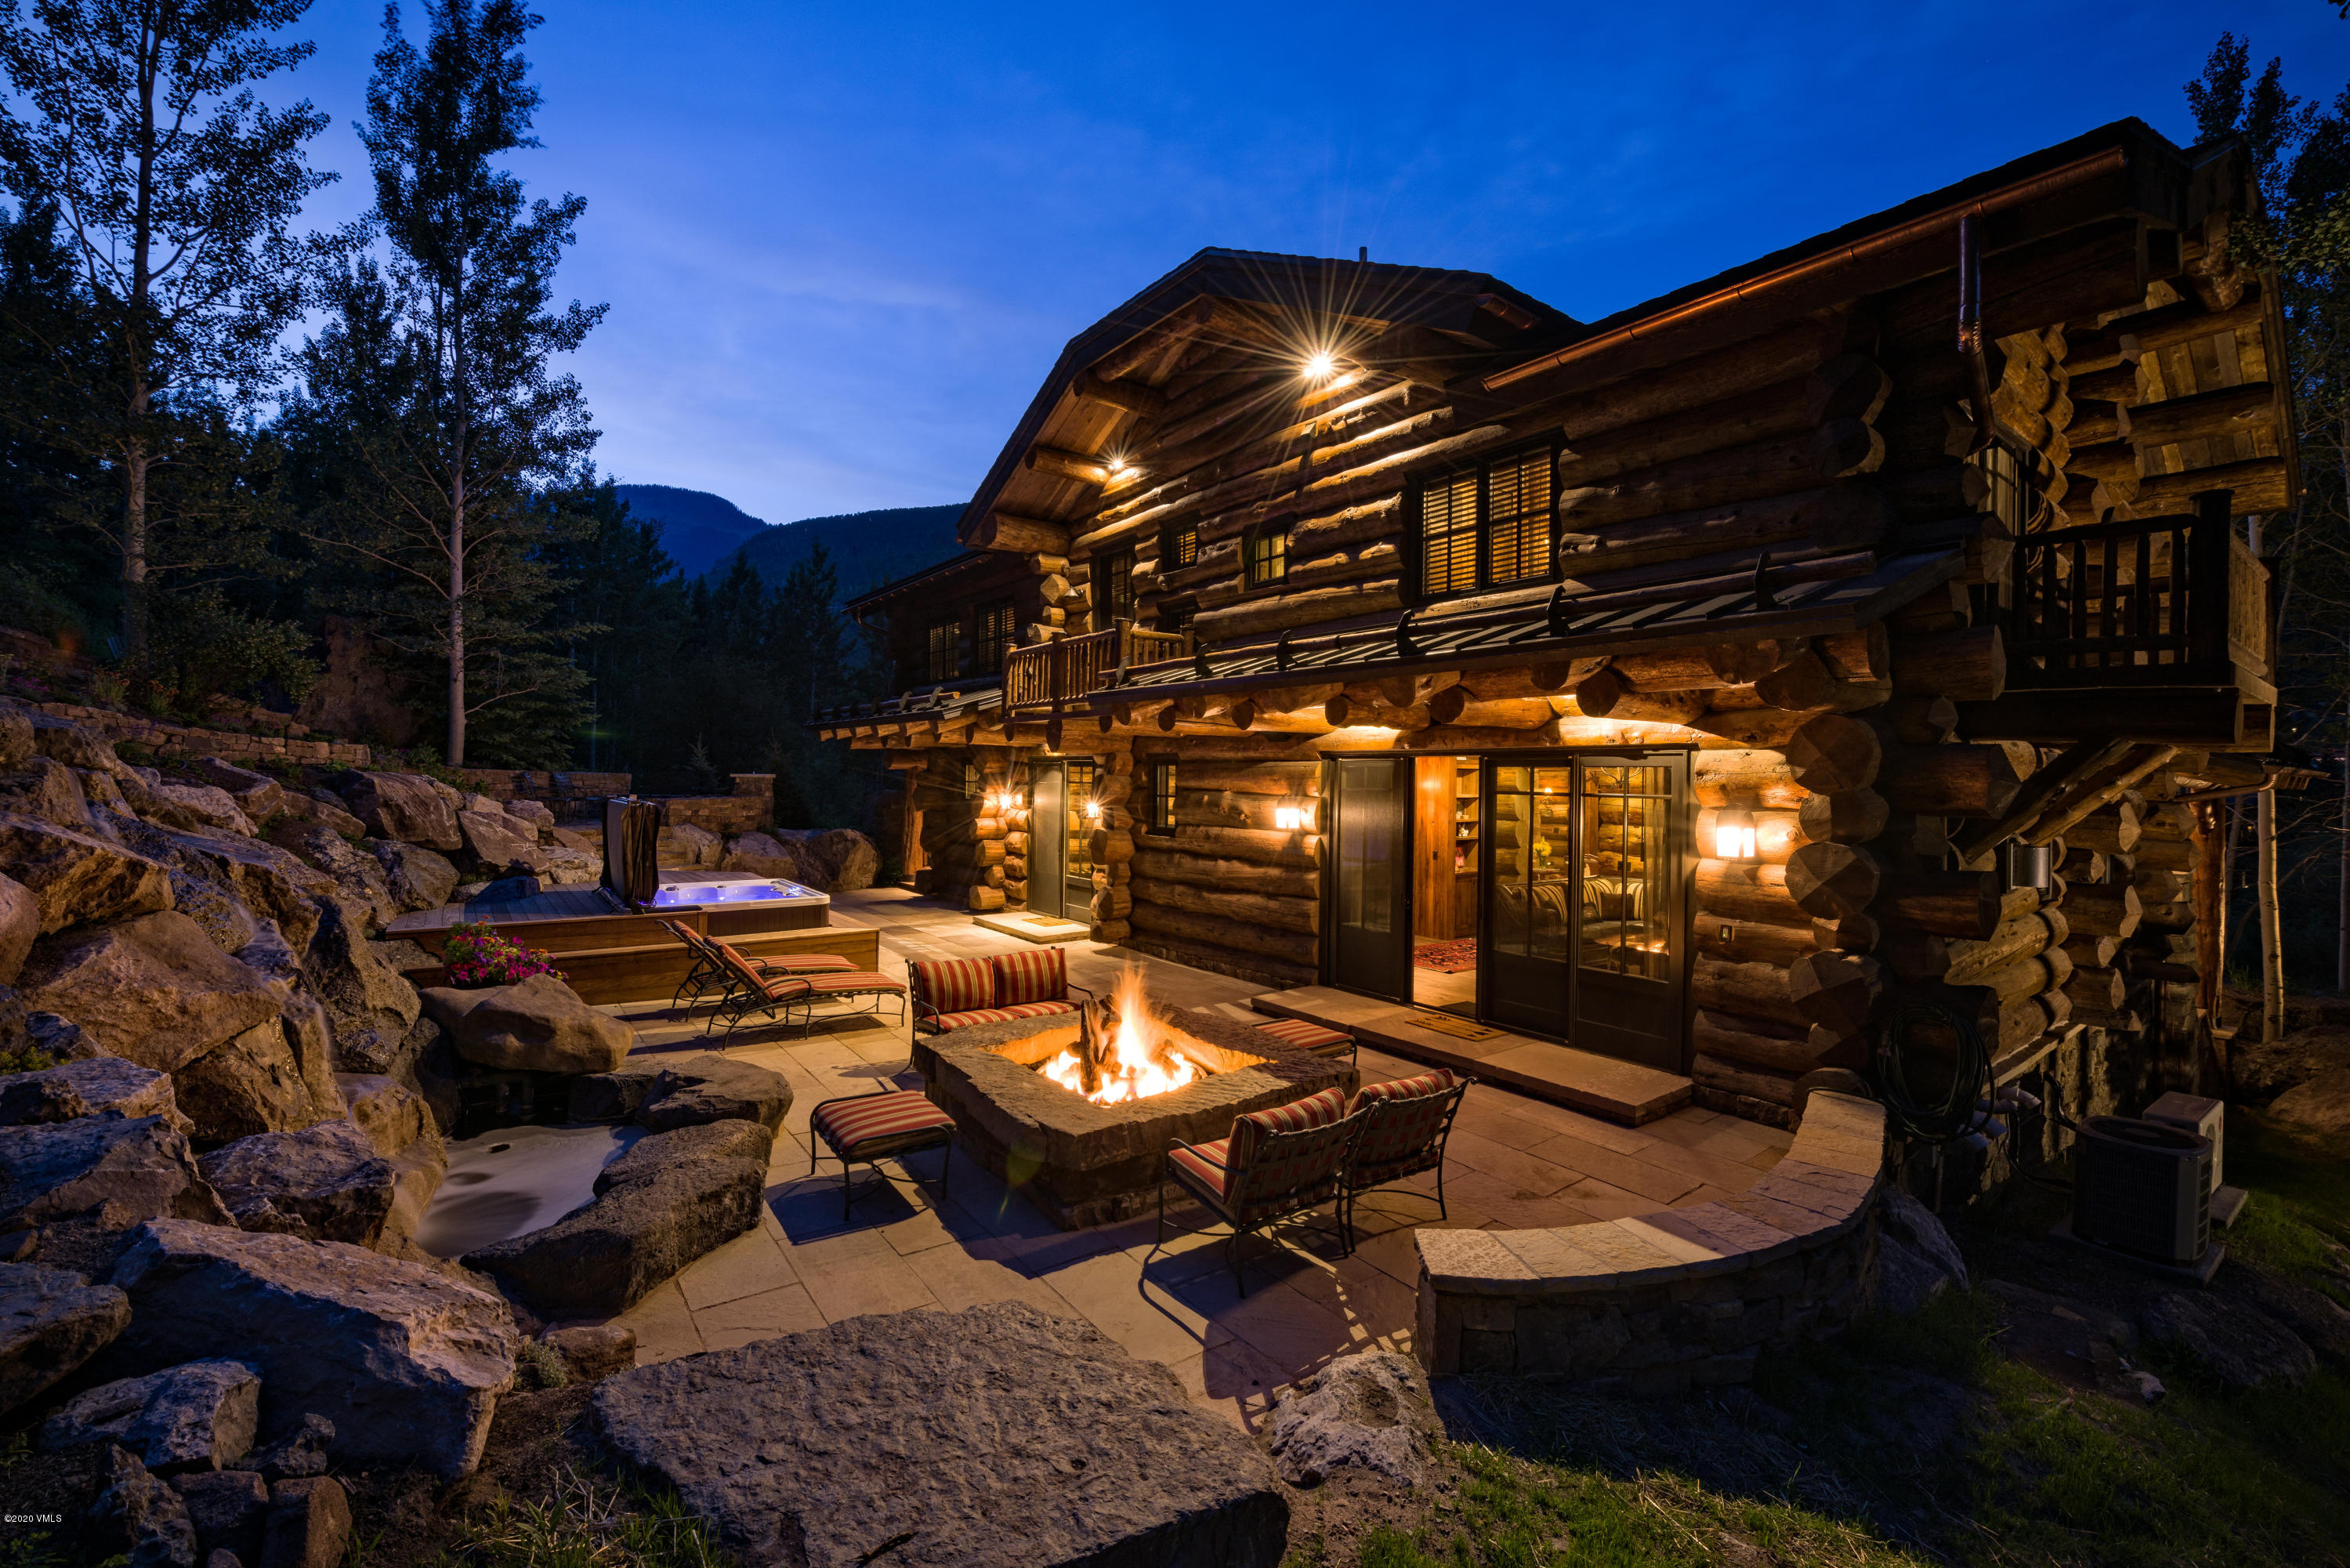 Beautiful custom log gem with stunning Gore Range views, mere steps from Gore Creek, the bus to Vail Village and biking or hiking.  Nestled on almost an acre of lush private grounds rests this beautifully mastered, high end jewel with a lovely back patio and graduated sitting areas up the mountain for ultimate views and outdoor pleasure! You've found your Vail dream home at 3816  Lupine Drive.  This enchanting home with 5 bedrooms further entices with three gas fireplaces along with a private mine-shaft themed cinema for those cozy evenings. The custom log home sleeps 12 adults comfortably. The gourmet kitchen is off of a pretty great room boasting a 35 foot ceiling. Offered with custom, designer furnishings.  The back patio offers summer perennial gardens, a waterfall, a large firepit, jacuzzi and BBQ. Potential to expand or add on 4000+/- sq.ft.  This home is being offered with a turn-key successful rental business.  High-end, elegance and comfort.  Nothing like it in coveted Vail!